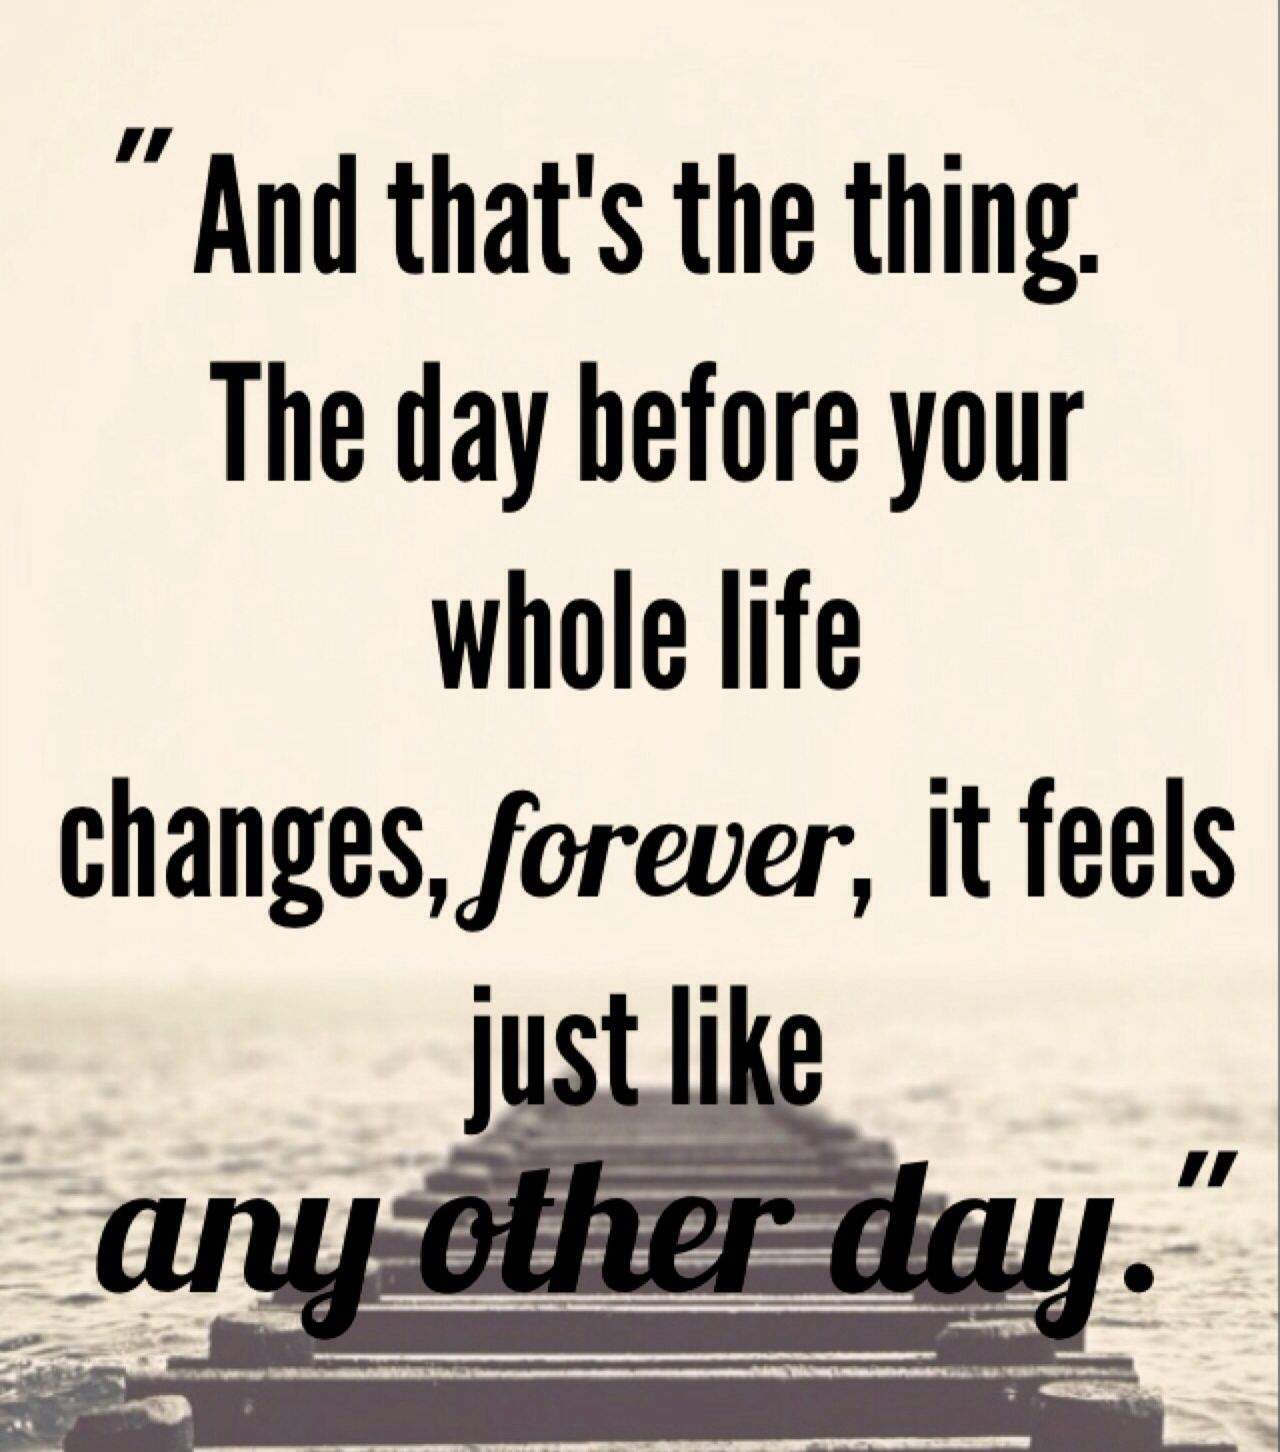 The Day Before Your Whole Life Changes, Forever, It